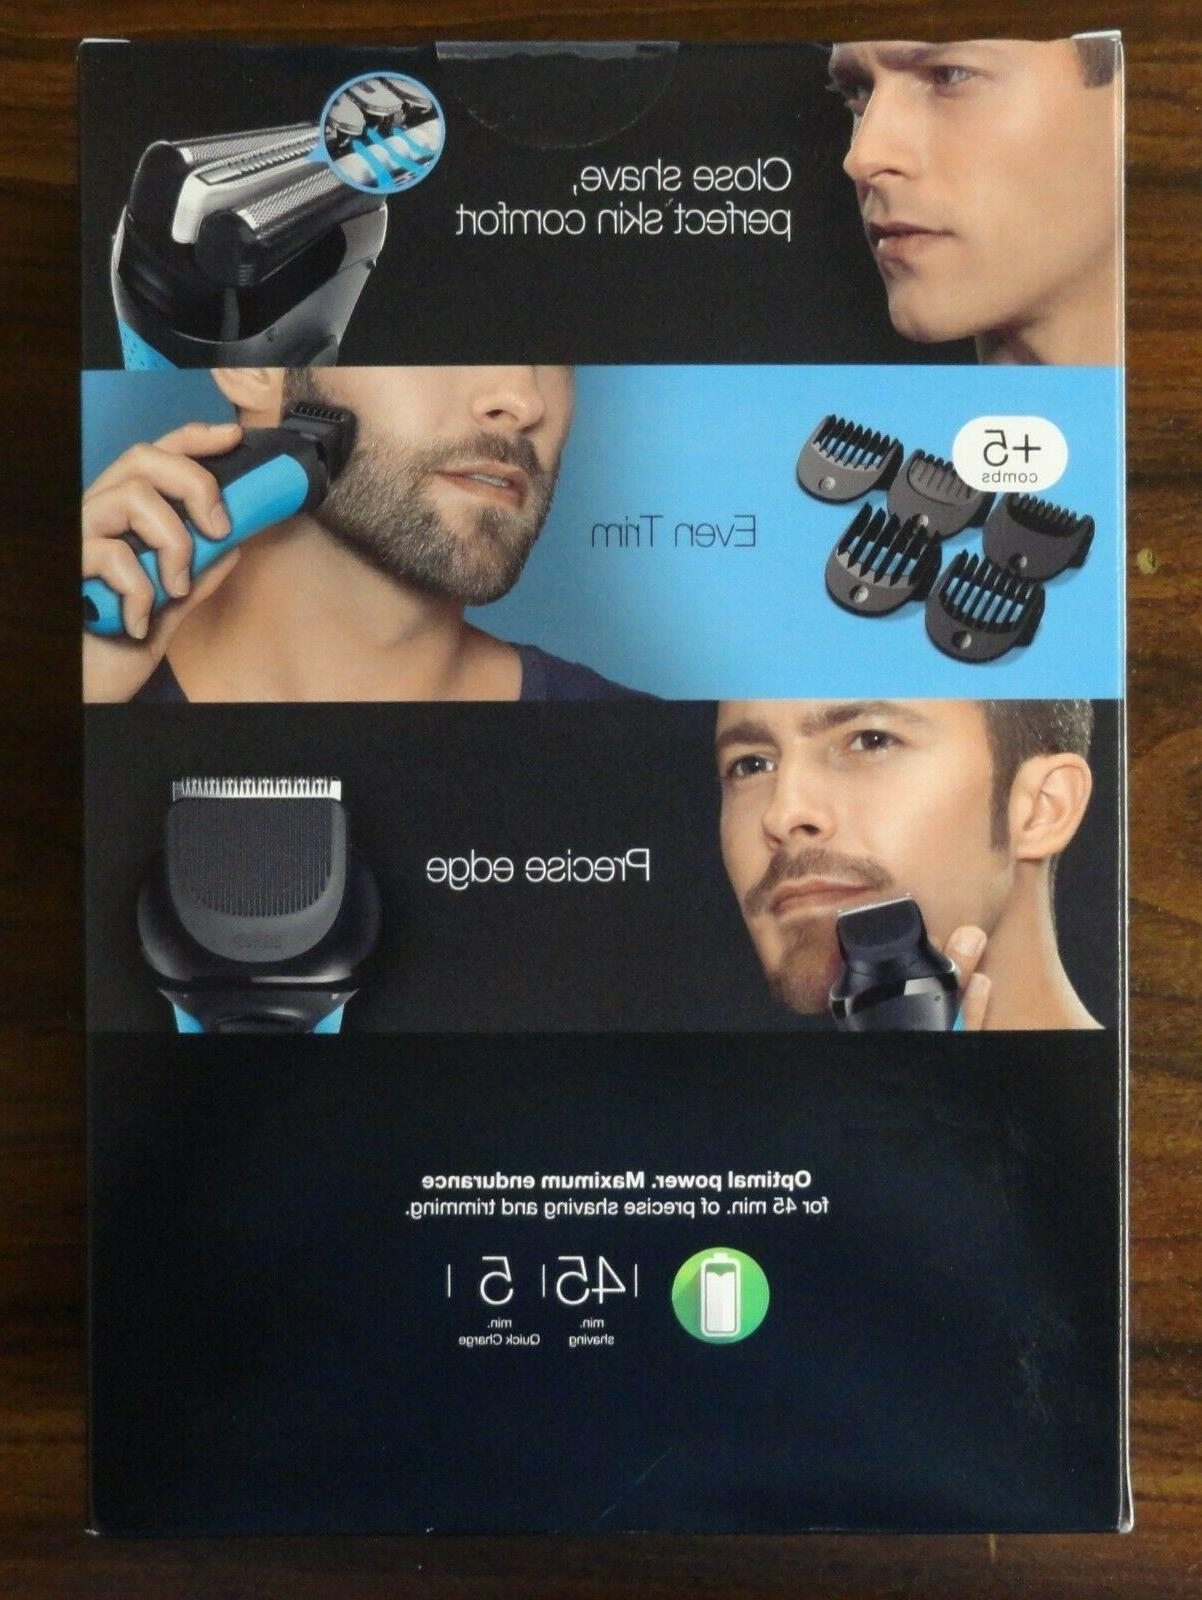 New Shave & 3-in-1 & Shaver